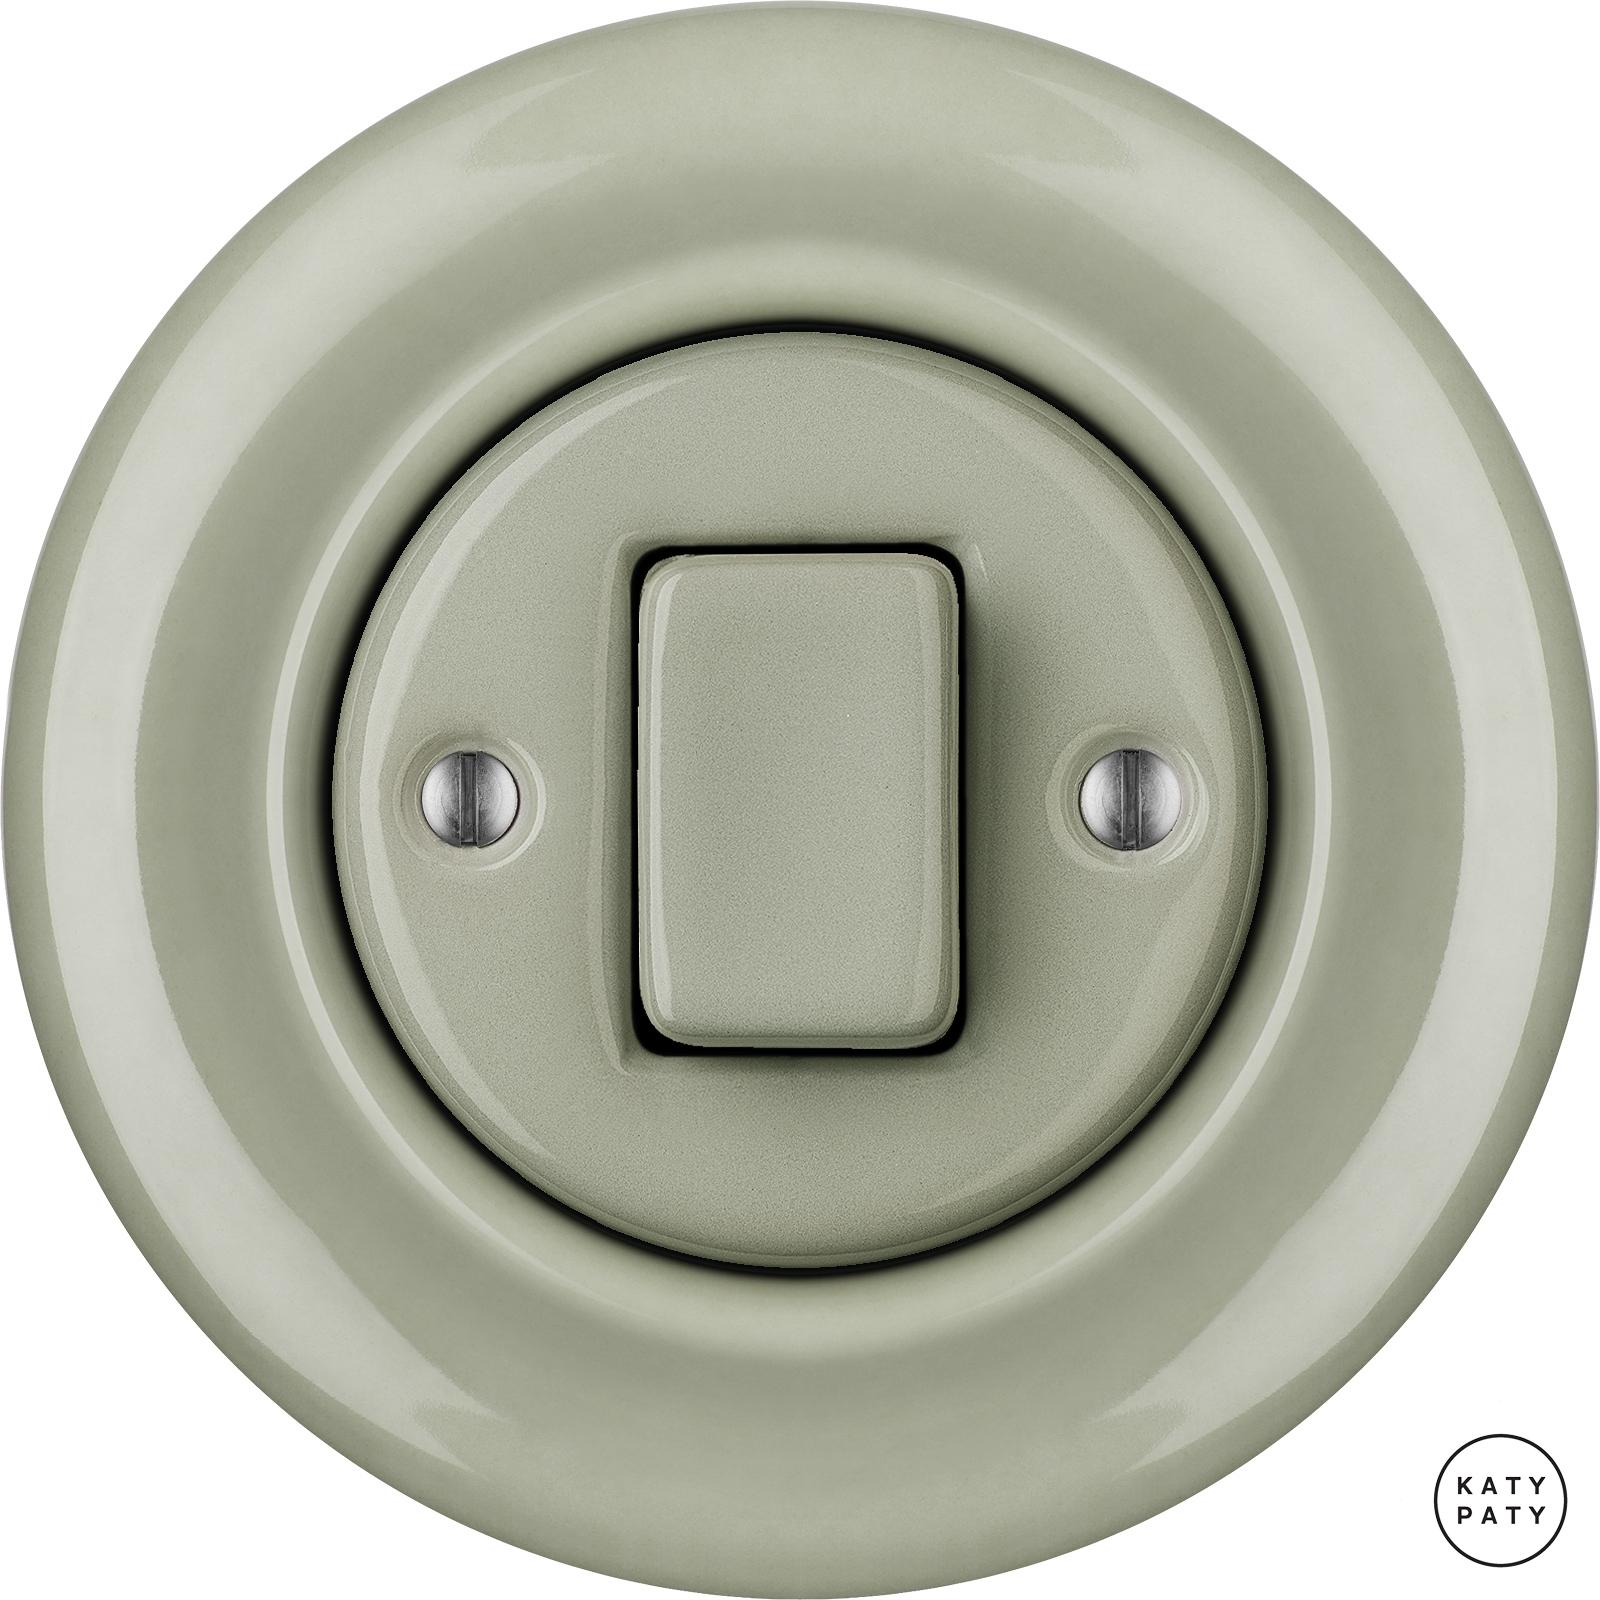 Katy Paty | Porcelain switches - a single key - FAT ()  - CHLORA